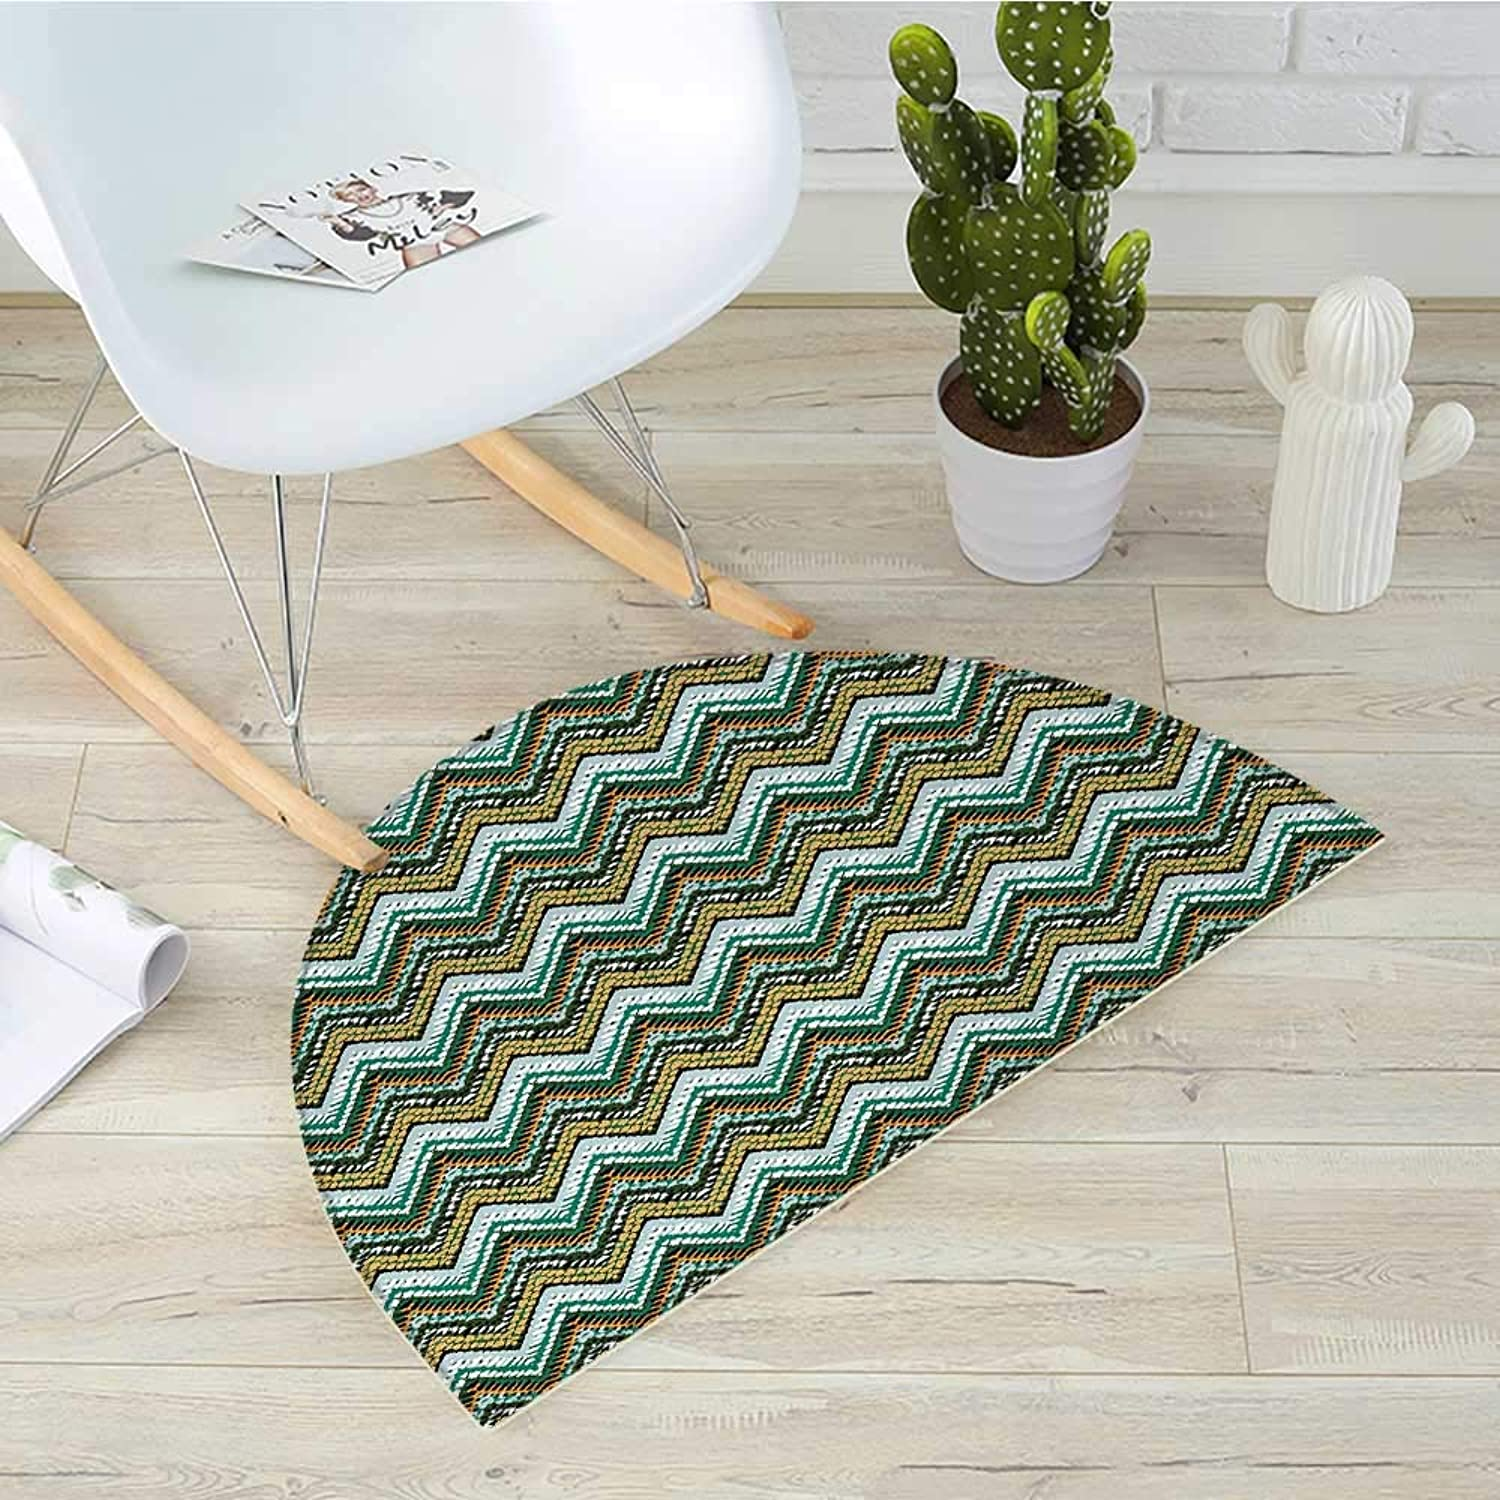 Ethnic Semicircular CushionStriped Boho Pattern Tribal Motifs Zigzag Lines Brushstrokes and Splatters of Paint Entry Door Mat H 43.3  xD 64.9  Multicolor